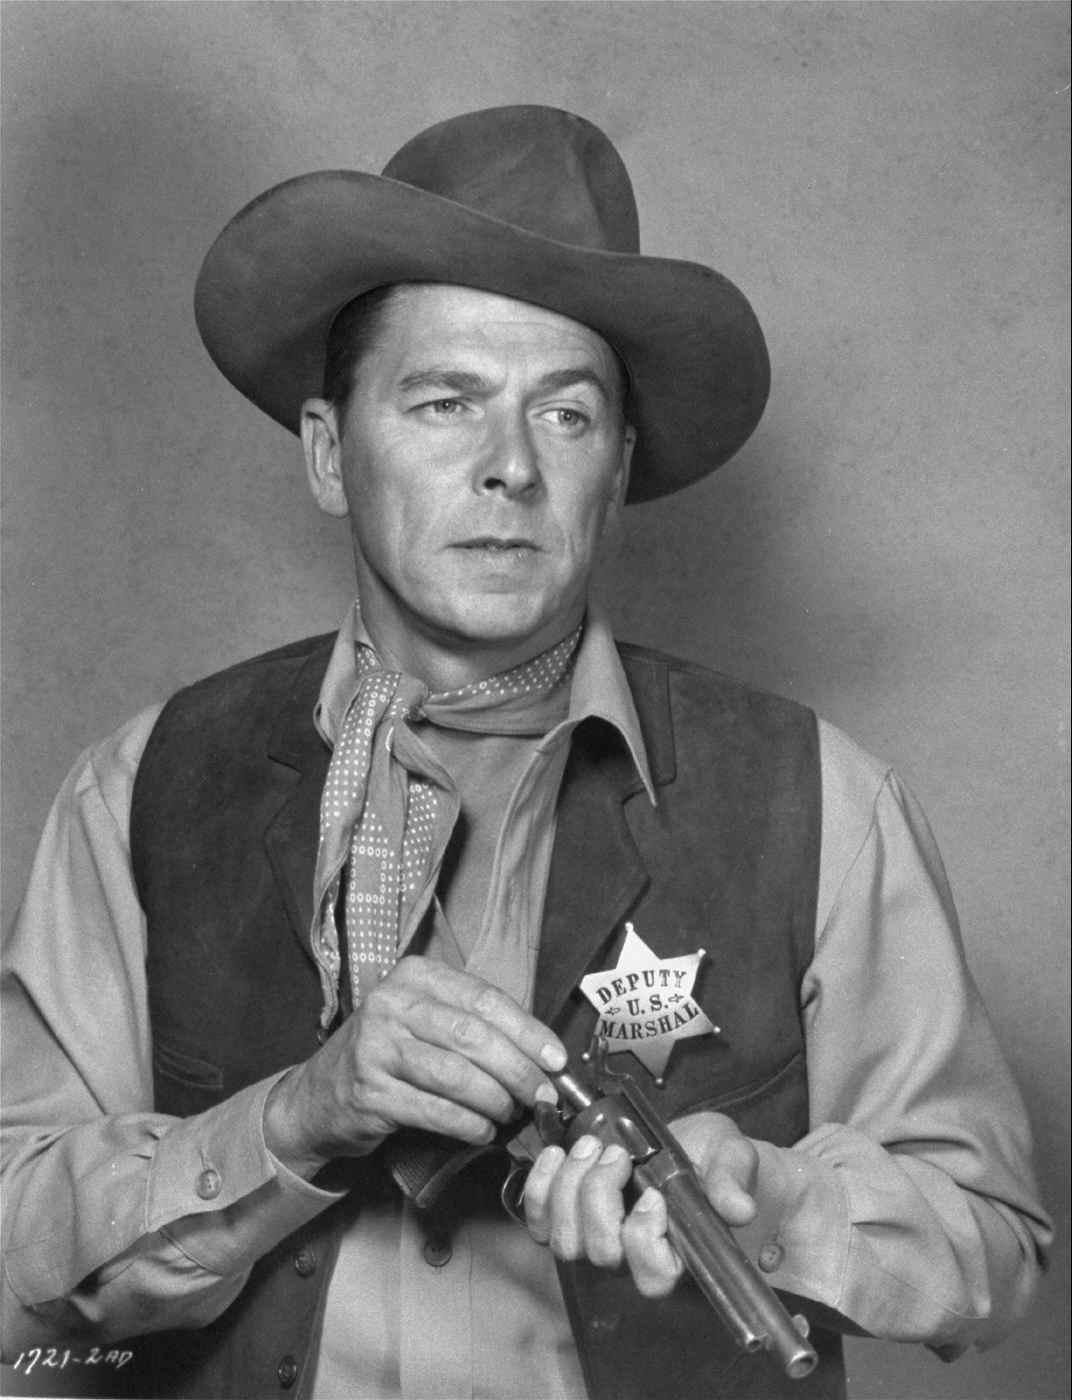 Ronald Reagan in Law and Order, 1953.